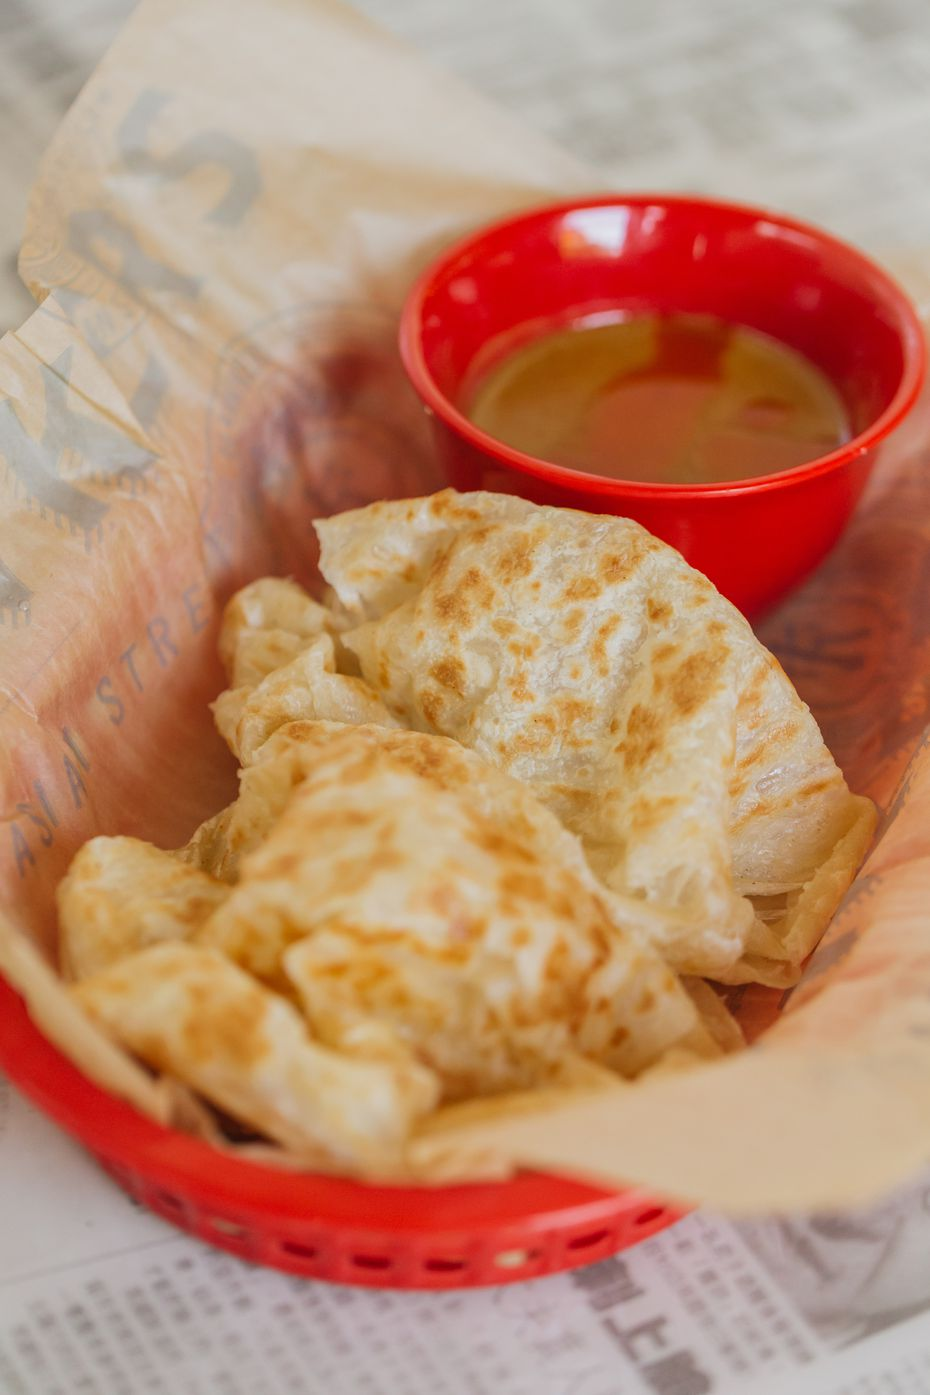 """""""The best part of the roti canai is the curry dipping sauce,"""" says Hawkers Asian Street Food CEO and co-founder Kaleb Harrell. Roti canai is Malaysian flatbread that he describes as where """"phyllo dough meets a croissant meets a biscuit."""""""